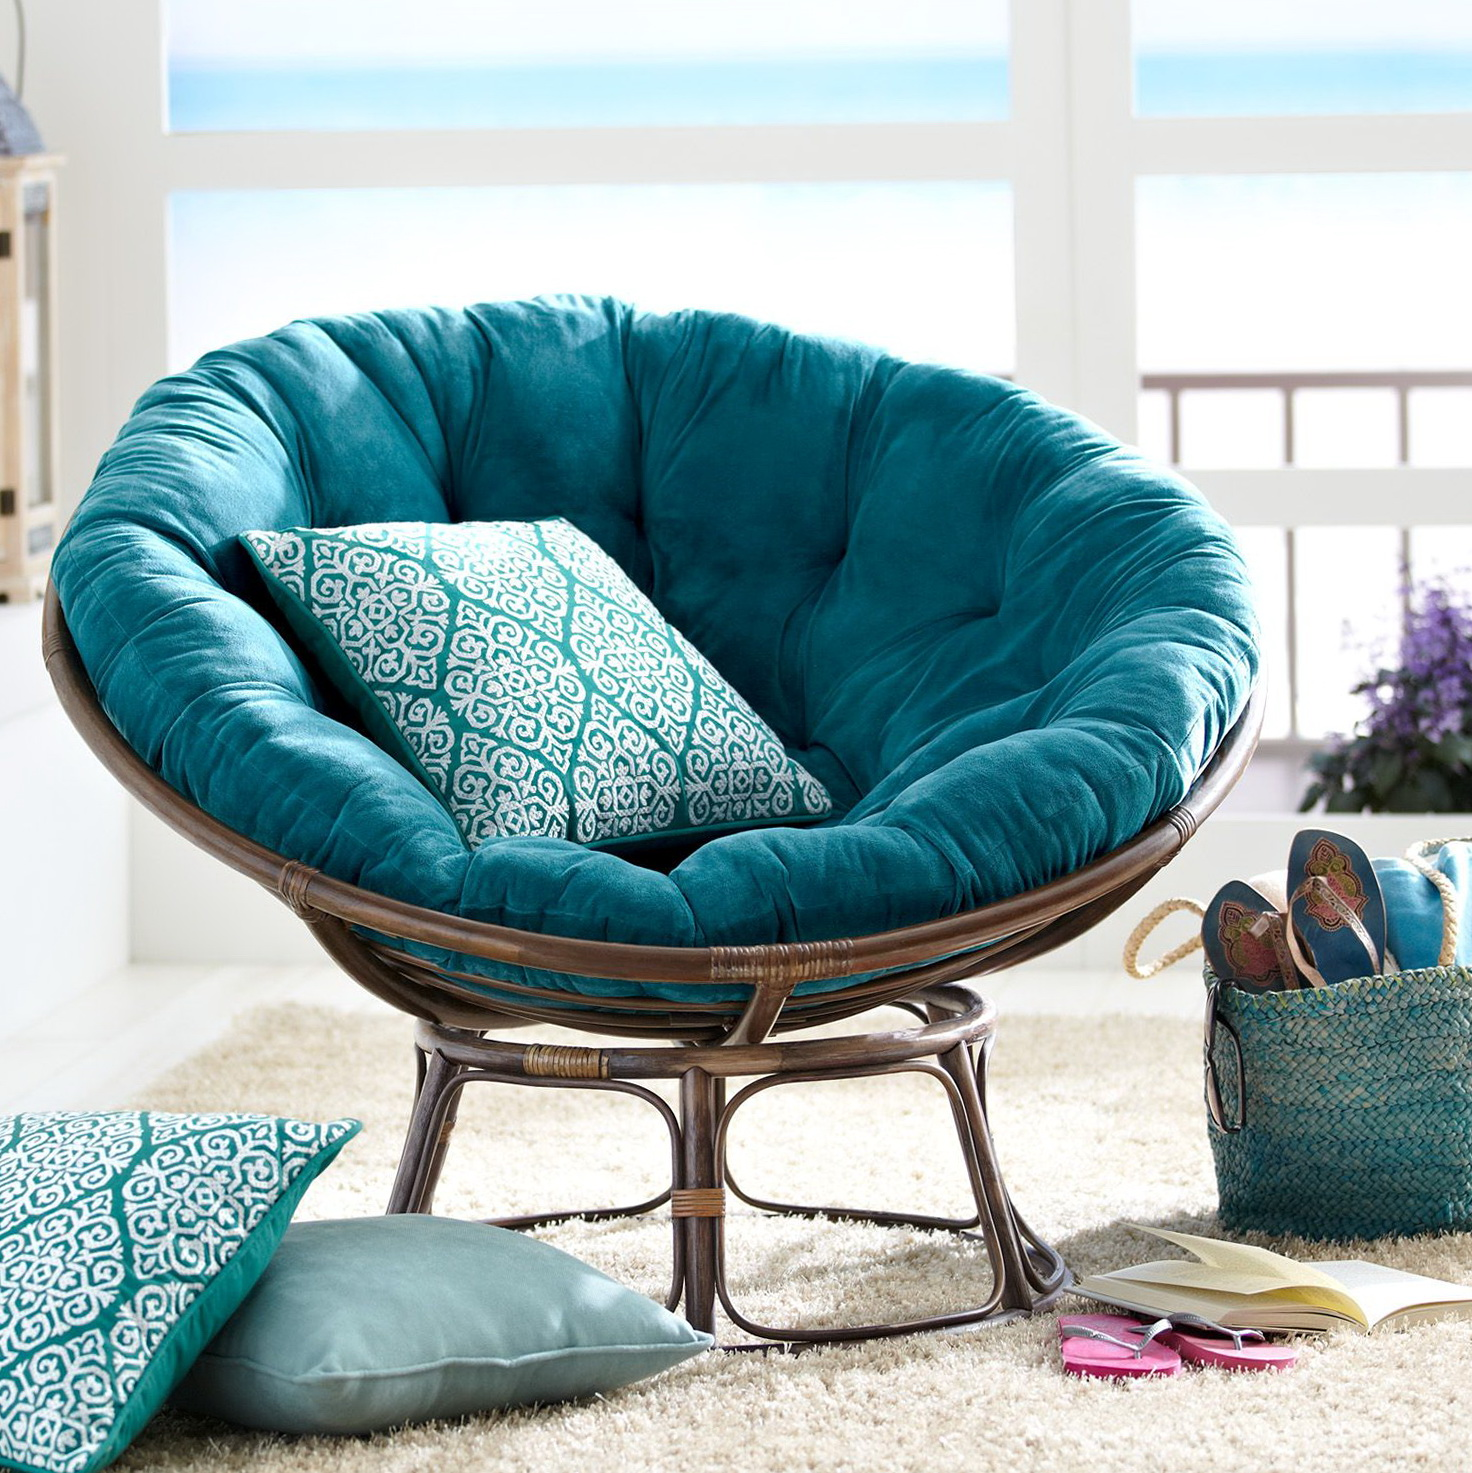 Papisan Chair Double Papasan Cushion Pier 1 Home Design Ideas